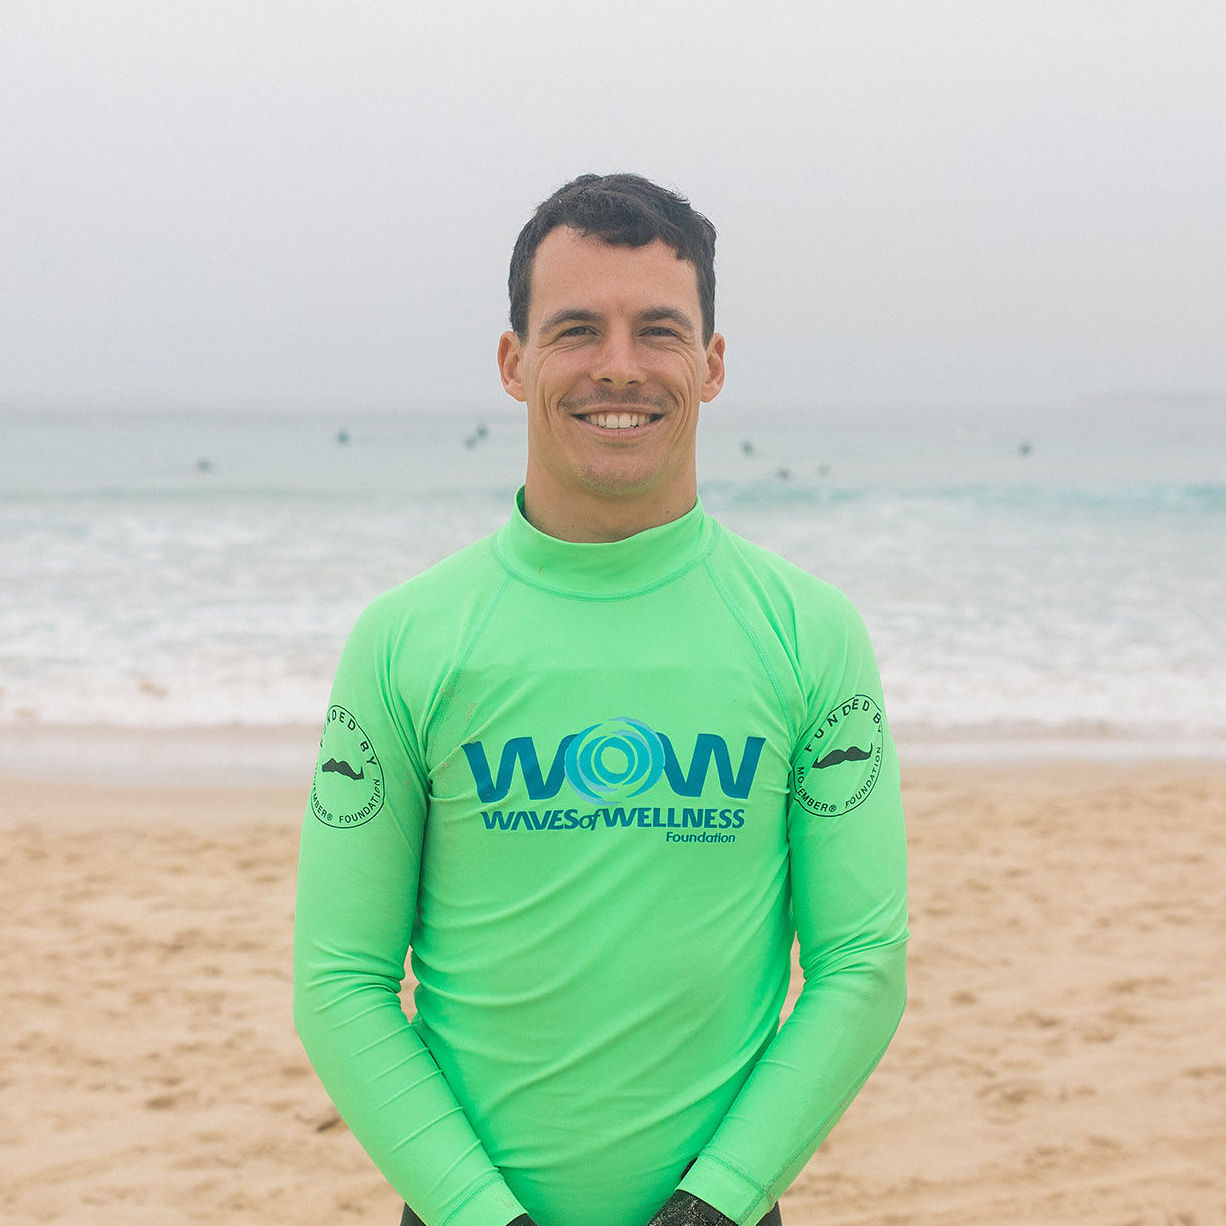 ROHAN MOOREProgram Facilitator - Rohan has a Bachelor of Applied Science (Occupational Therapy). Rohan is an Occupational Therapist with experience working in mental health. Rohan began surfing at an early age and soon became enthralled with the activity and ocean. Outside of work Rohan dedicates a majority of his time to finding waves and you'll often find him riding a small board on a fun looking right hander. He's always got a big smile on his face, and keen to lend a hand, just don't ask him to touch his own bellybutton.